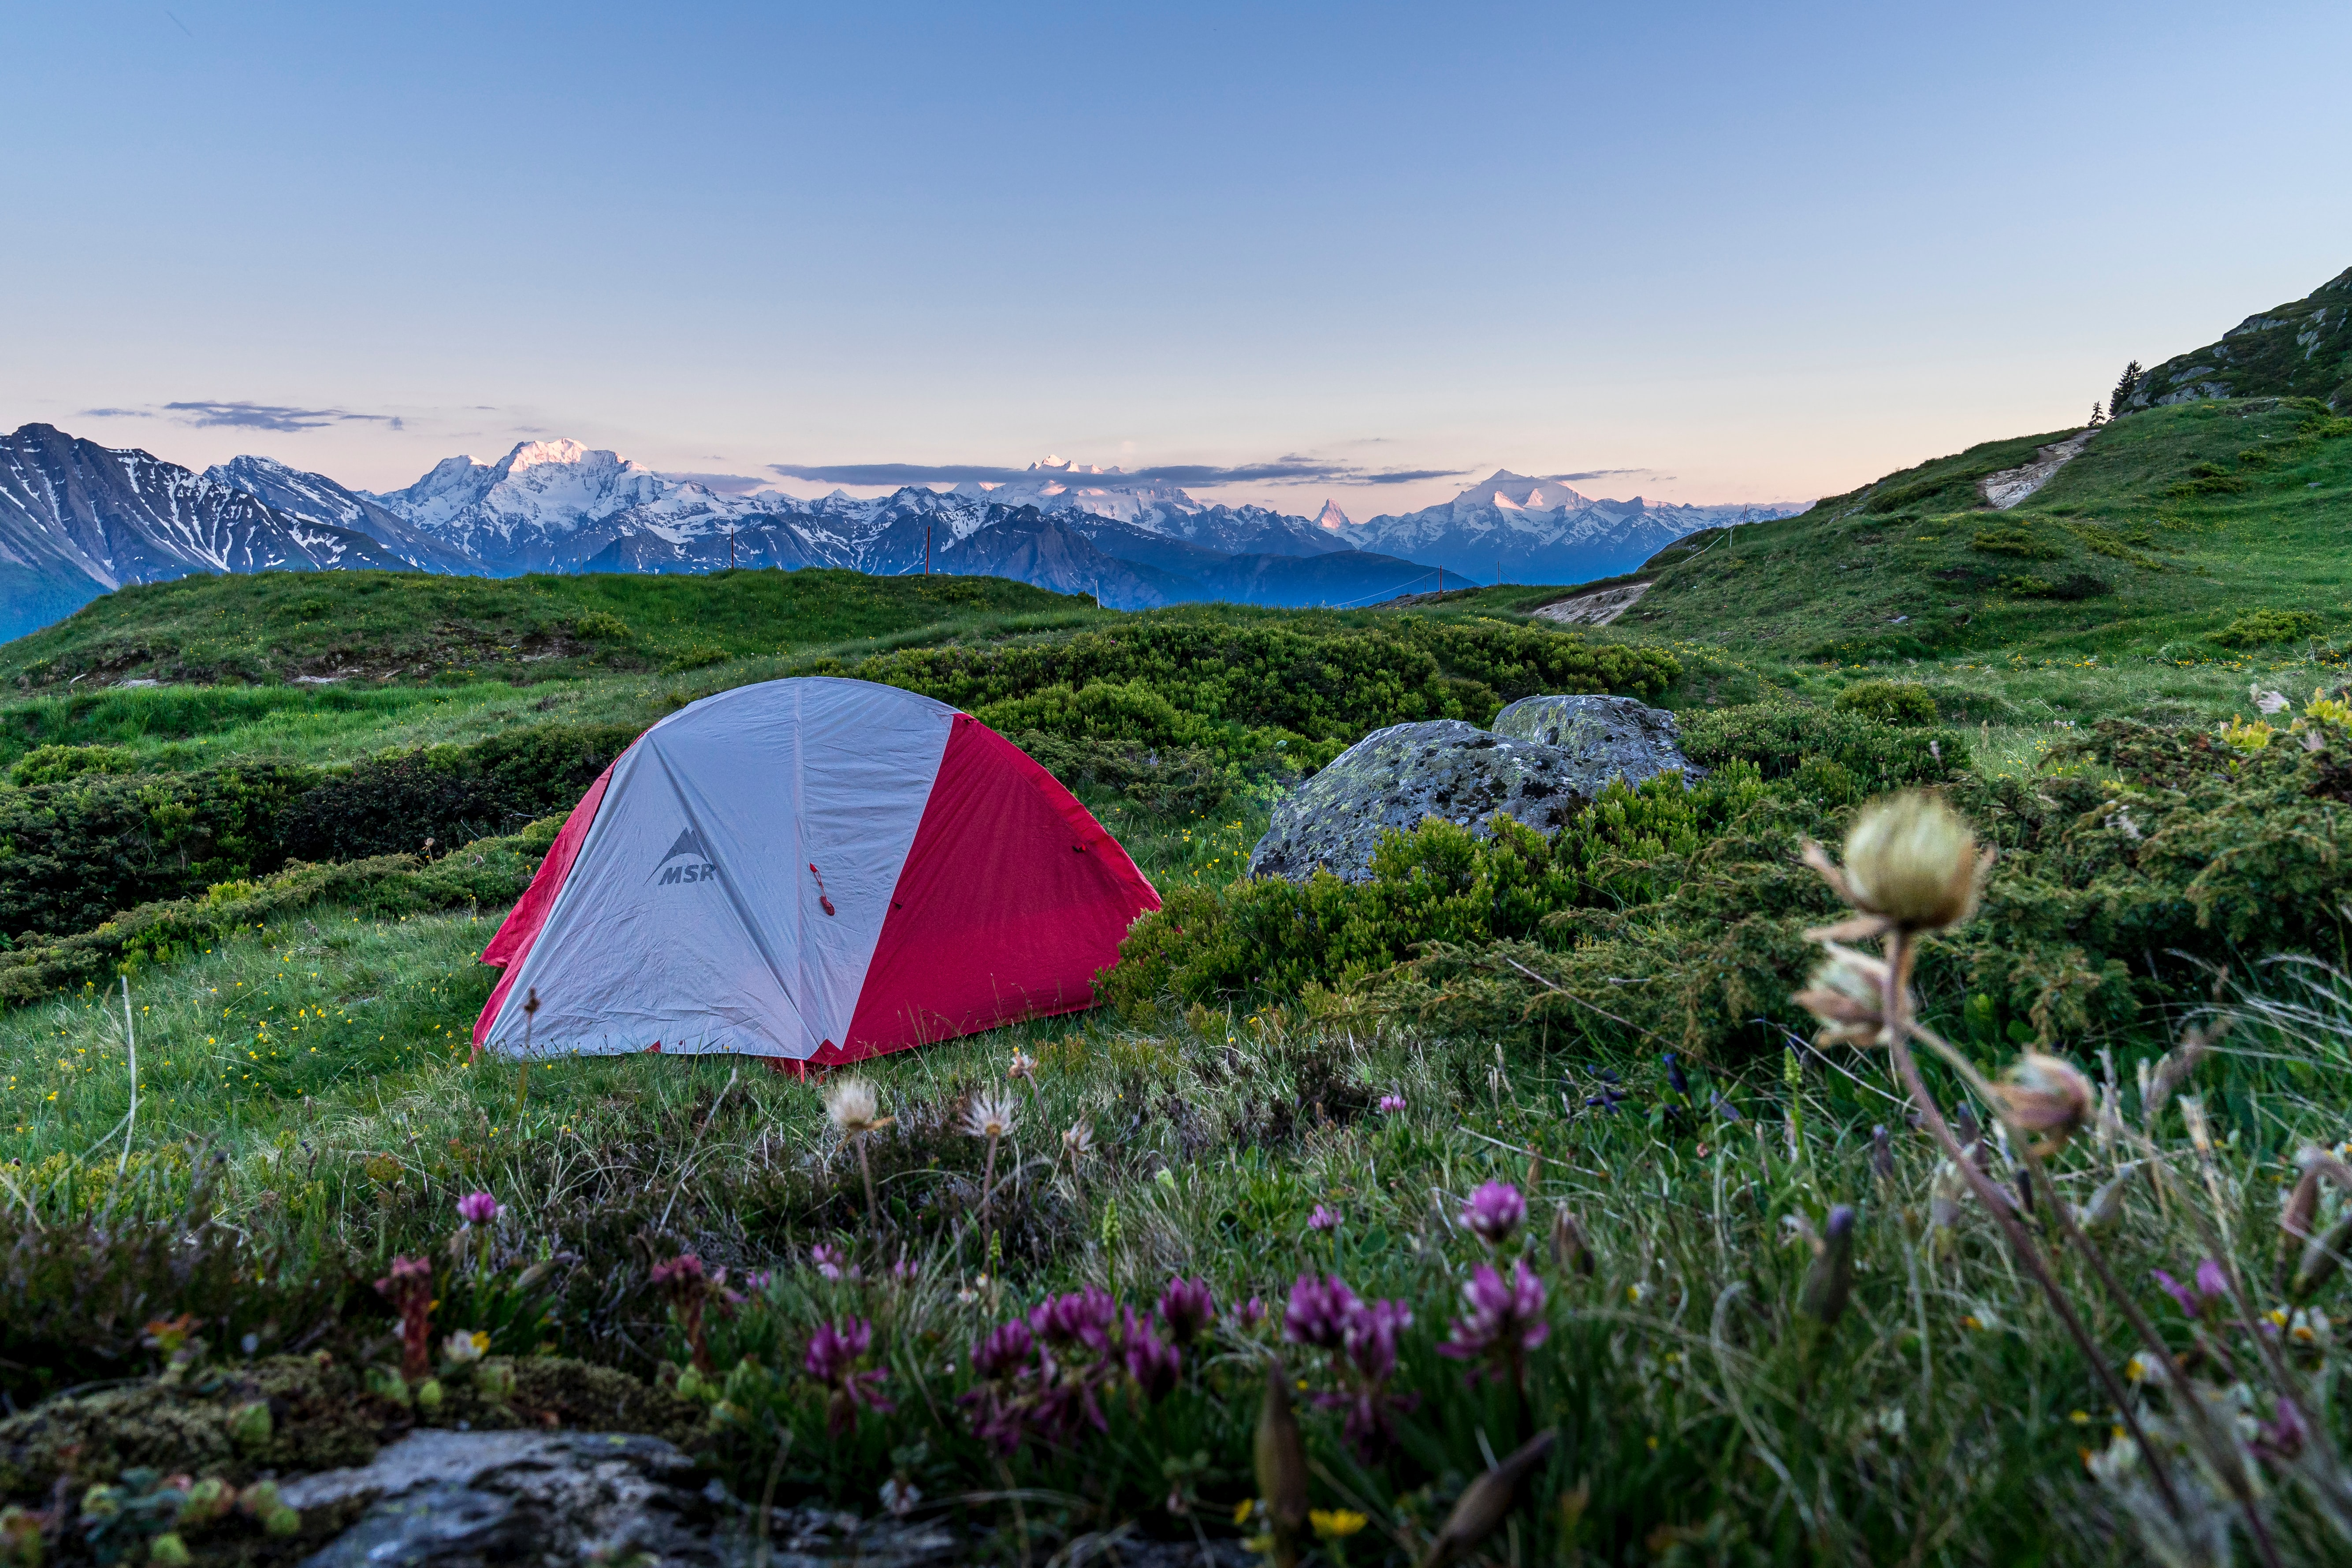 155039 download wallpaper Camping, Nature, Mountains, Lawn, Tent, Campsite screensavers and pictures for free